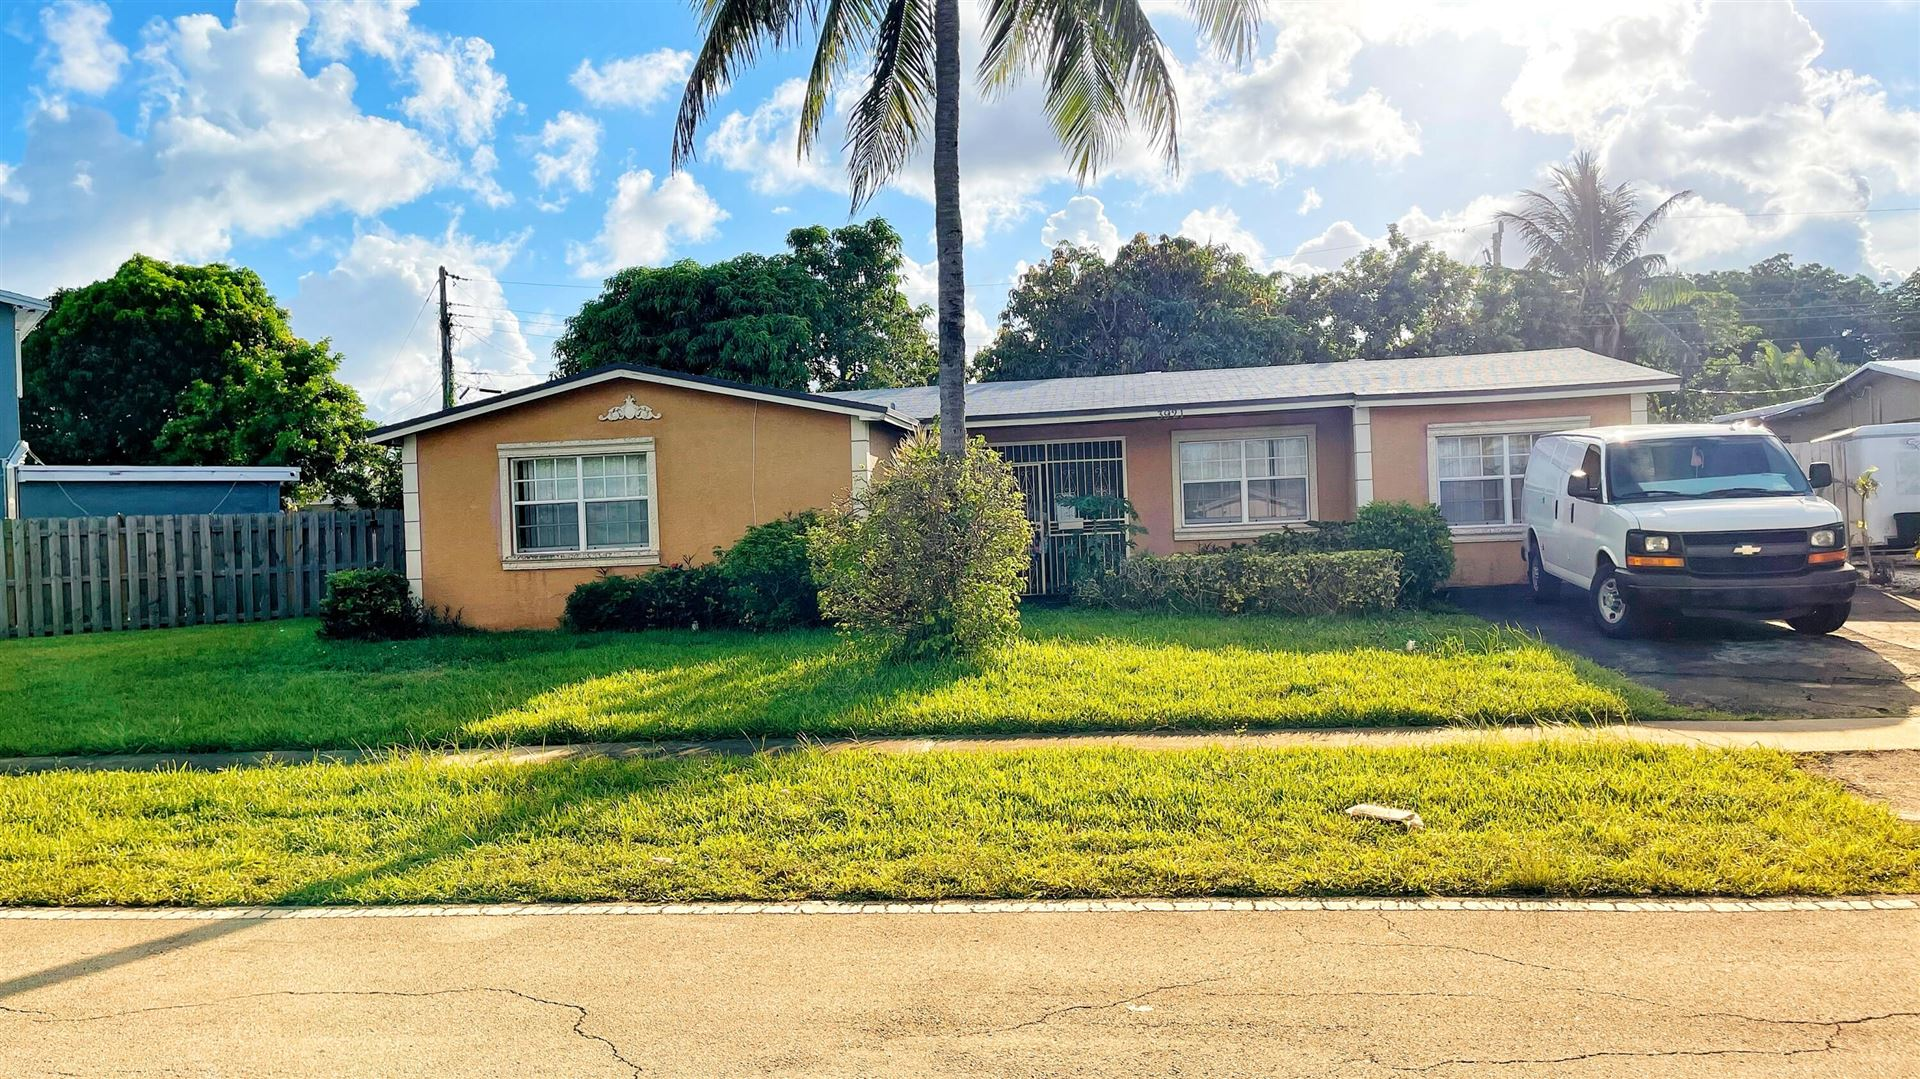 Photo of 3921 NW 38th Avenue, Lauderdale Lakes, FL 33309 (MLS # RX-10731835)